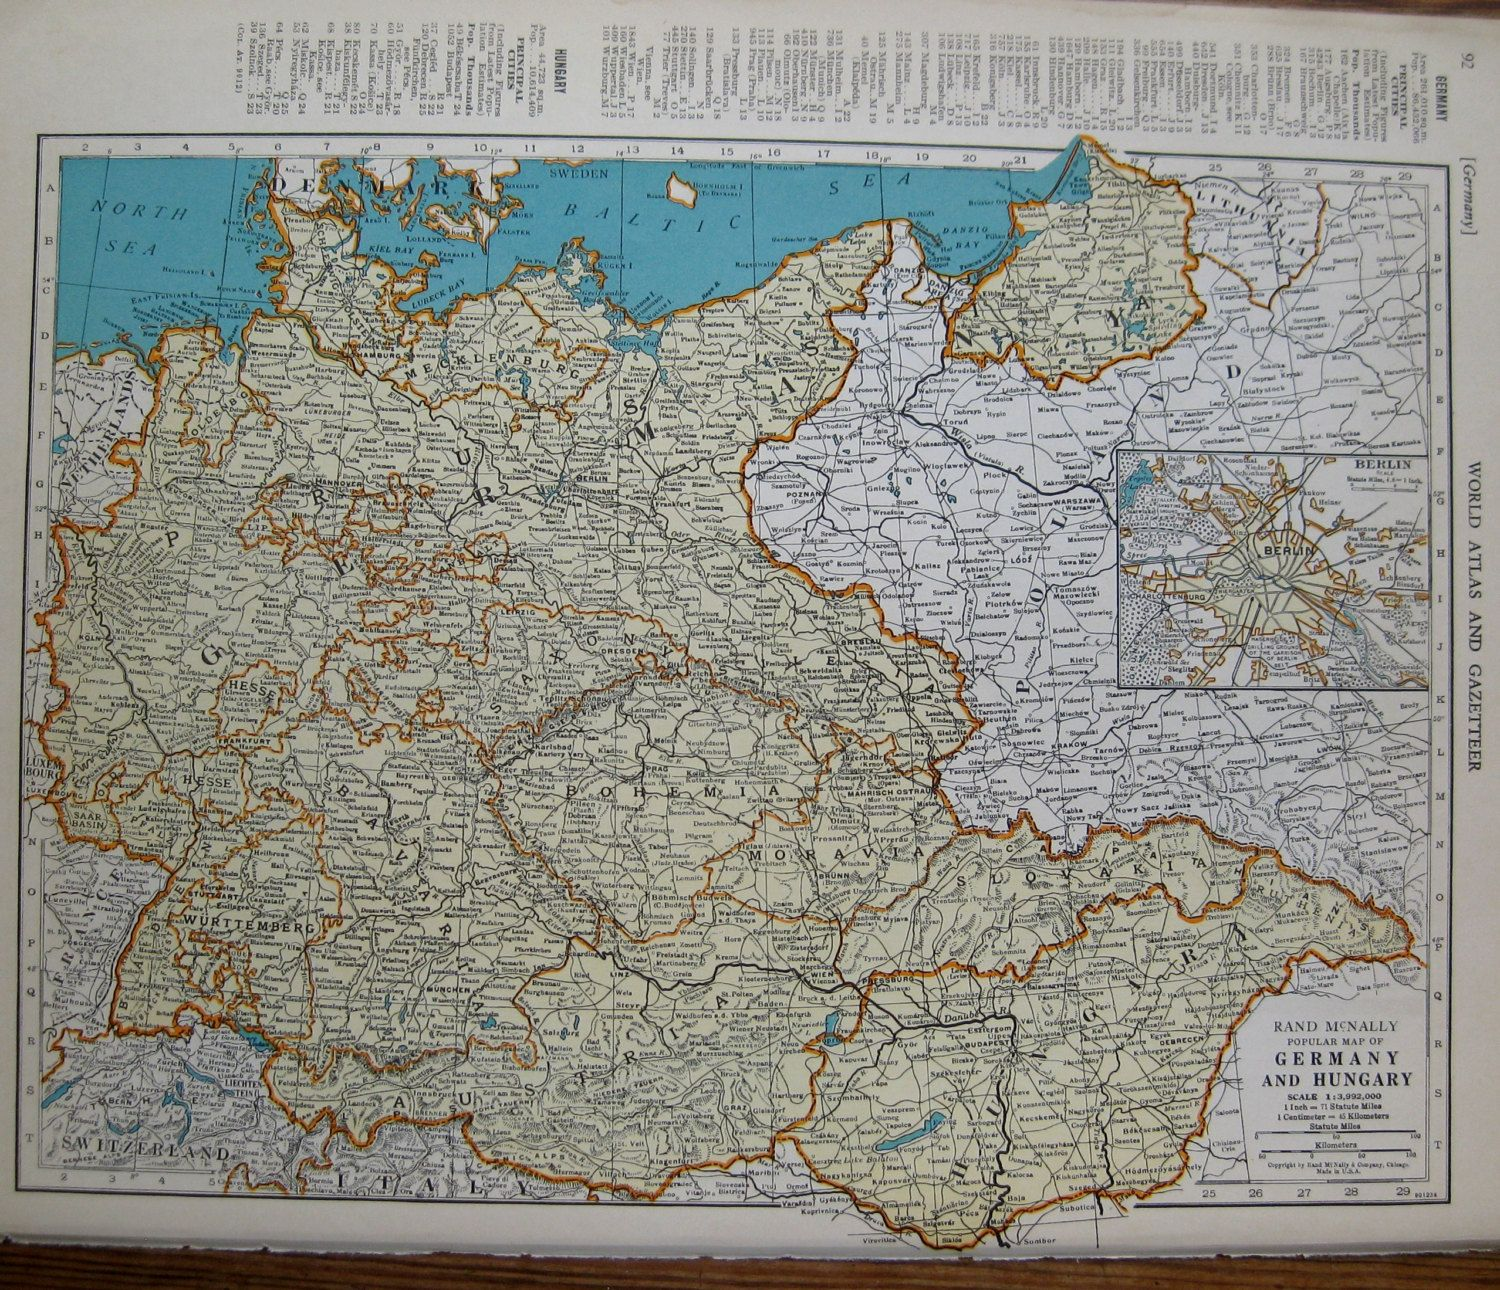 Map Of Germany And Hungary.Antique Germany Map Hungary Map 1939 Vintage 1930s Map Plaindealing